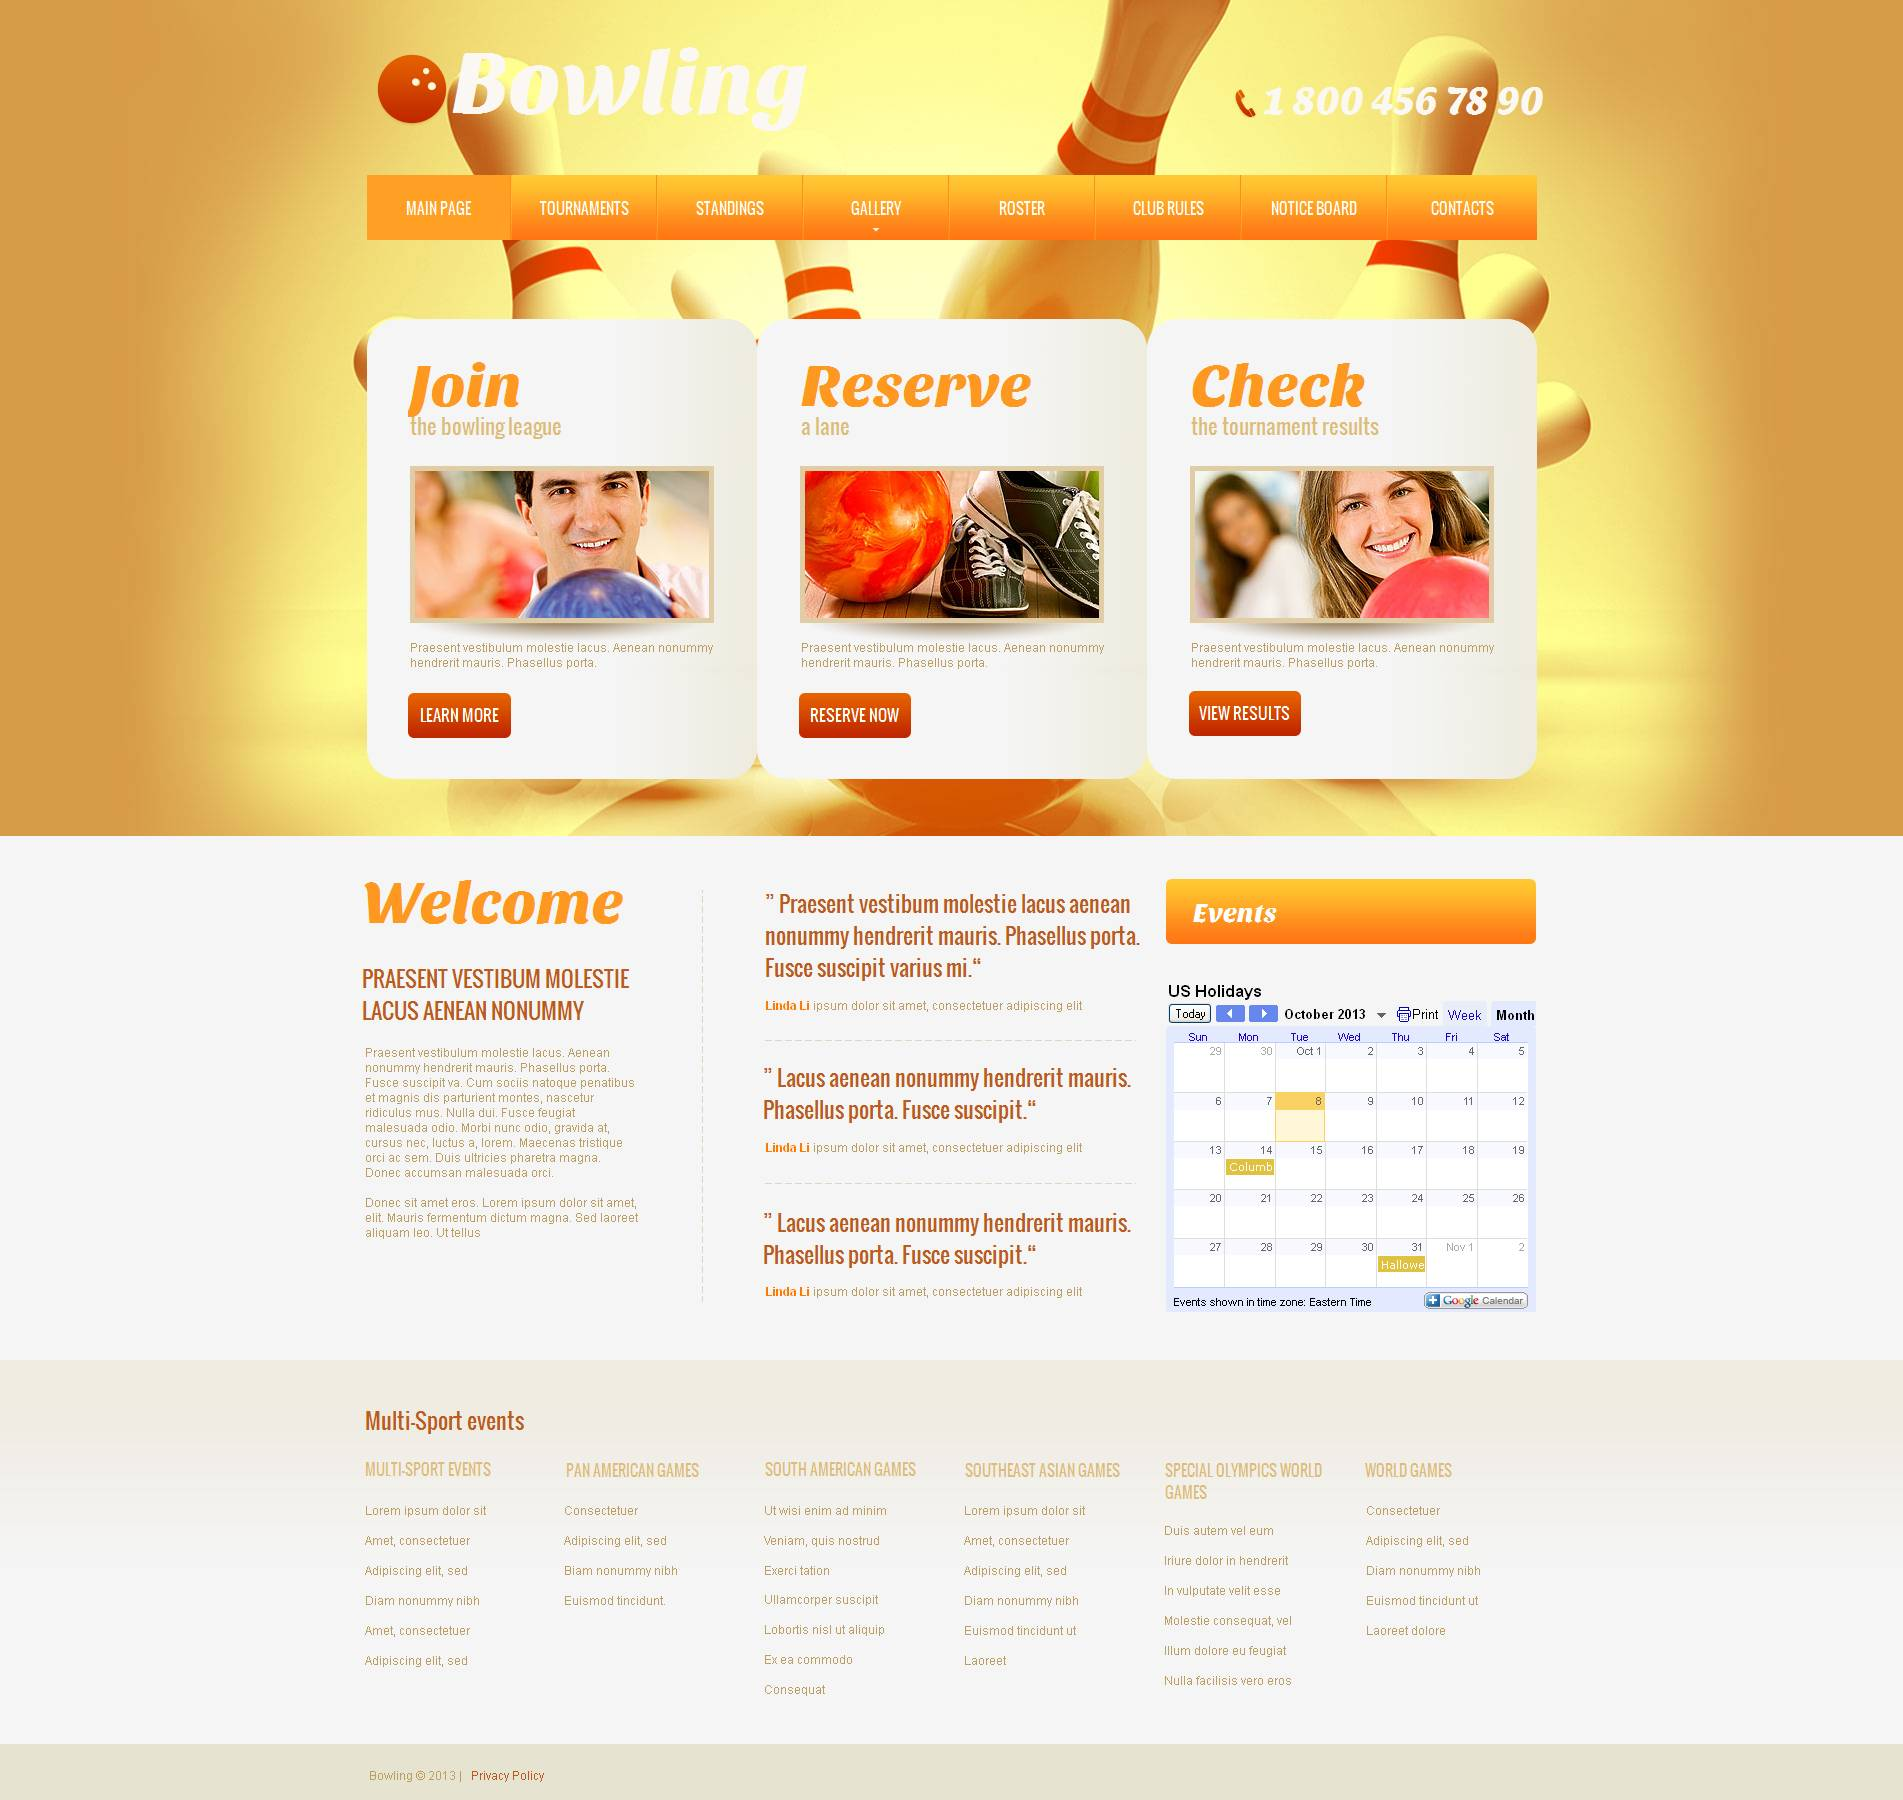 Bowling Moto CMS HTML Template